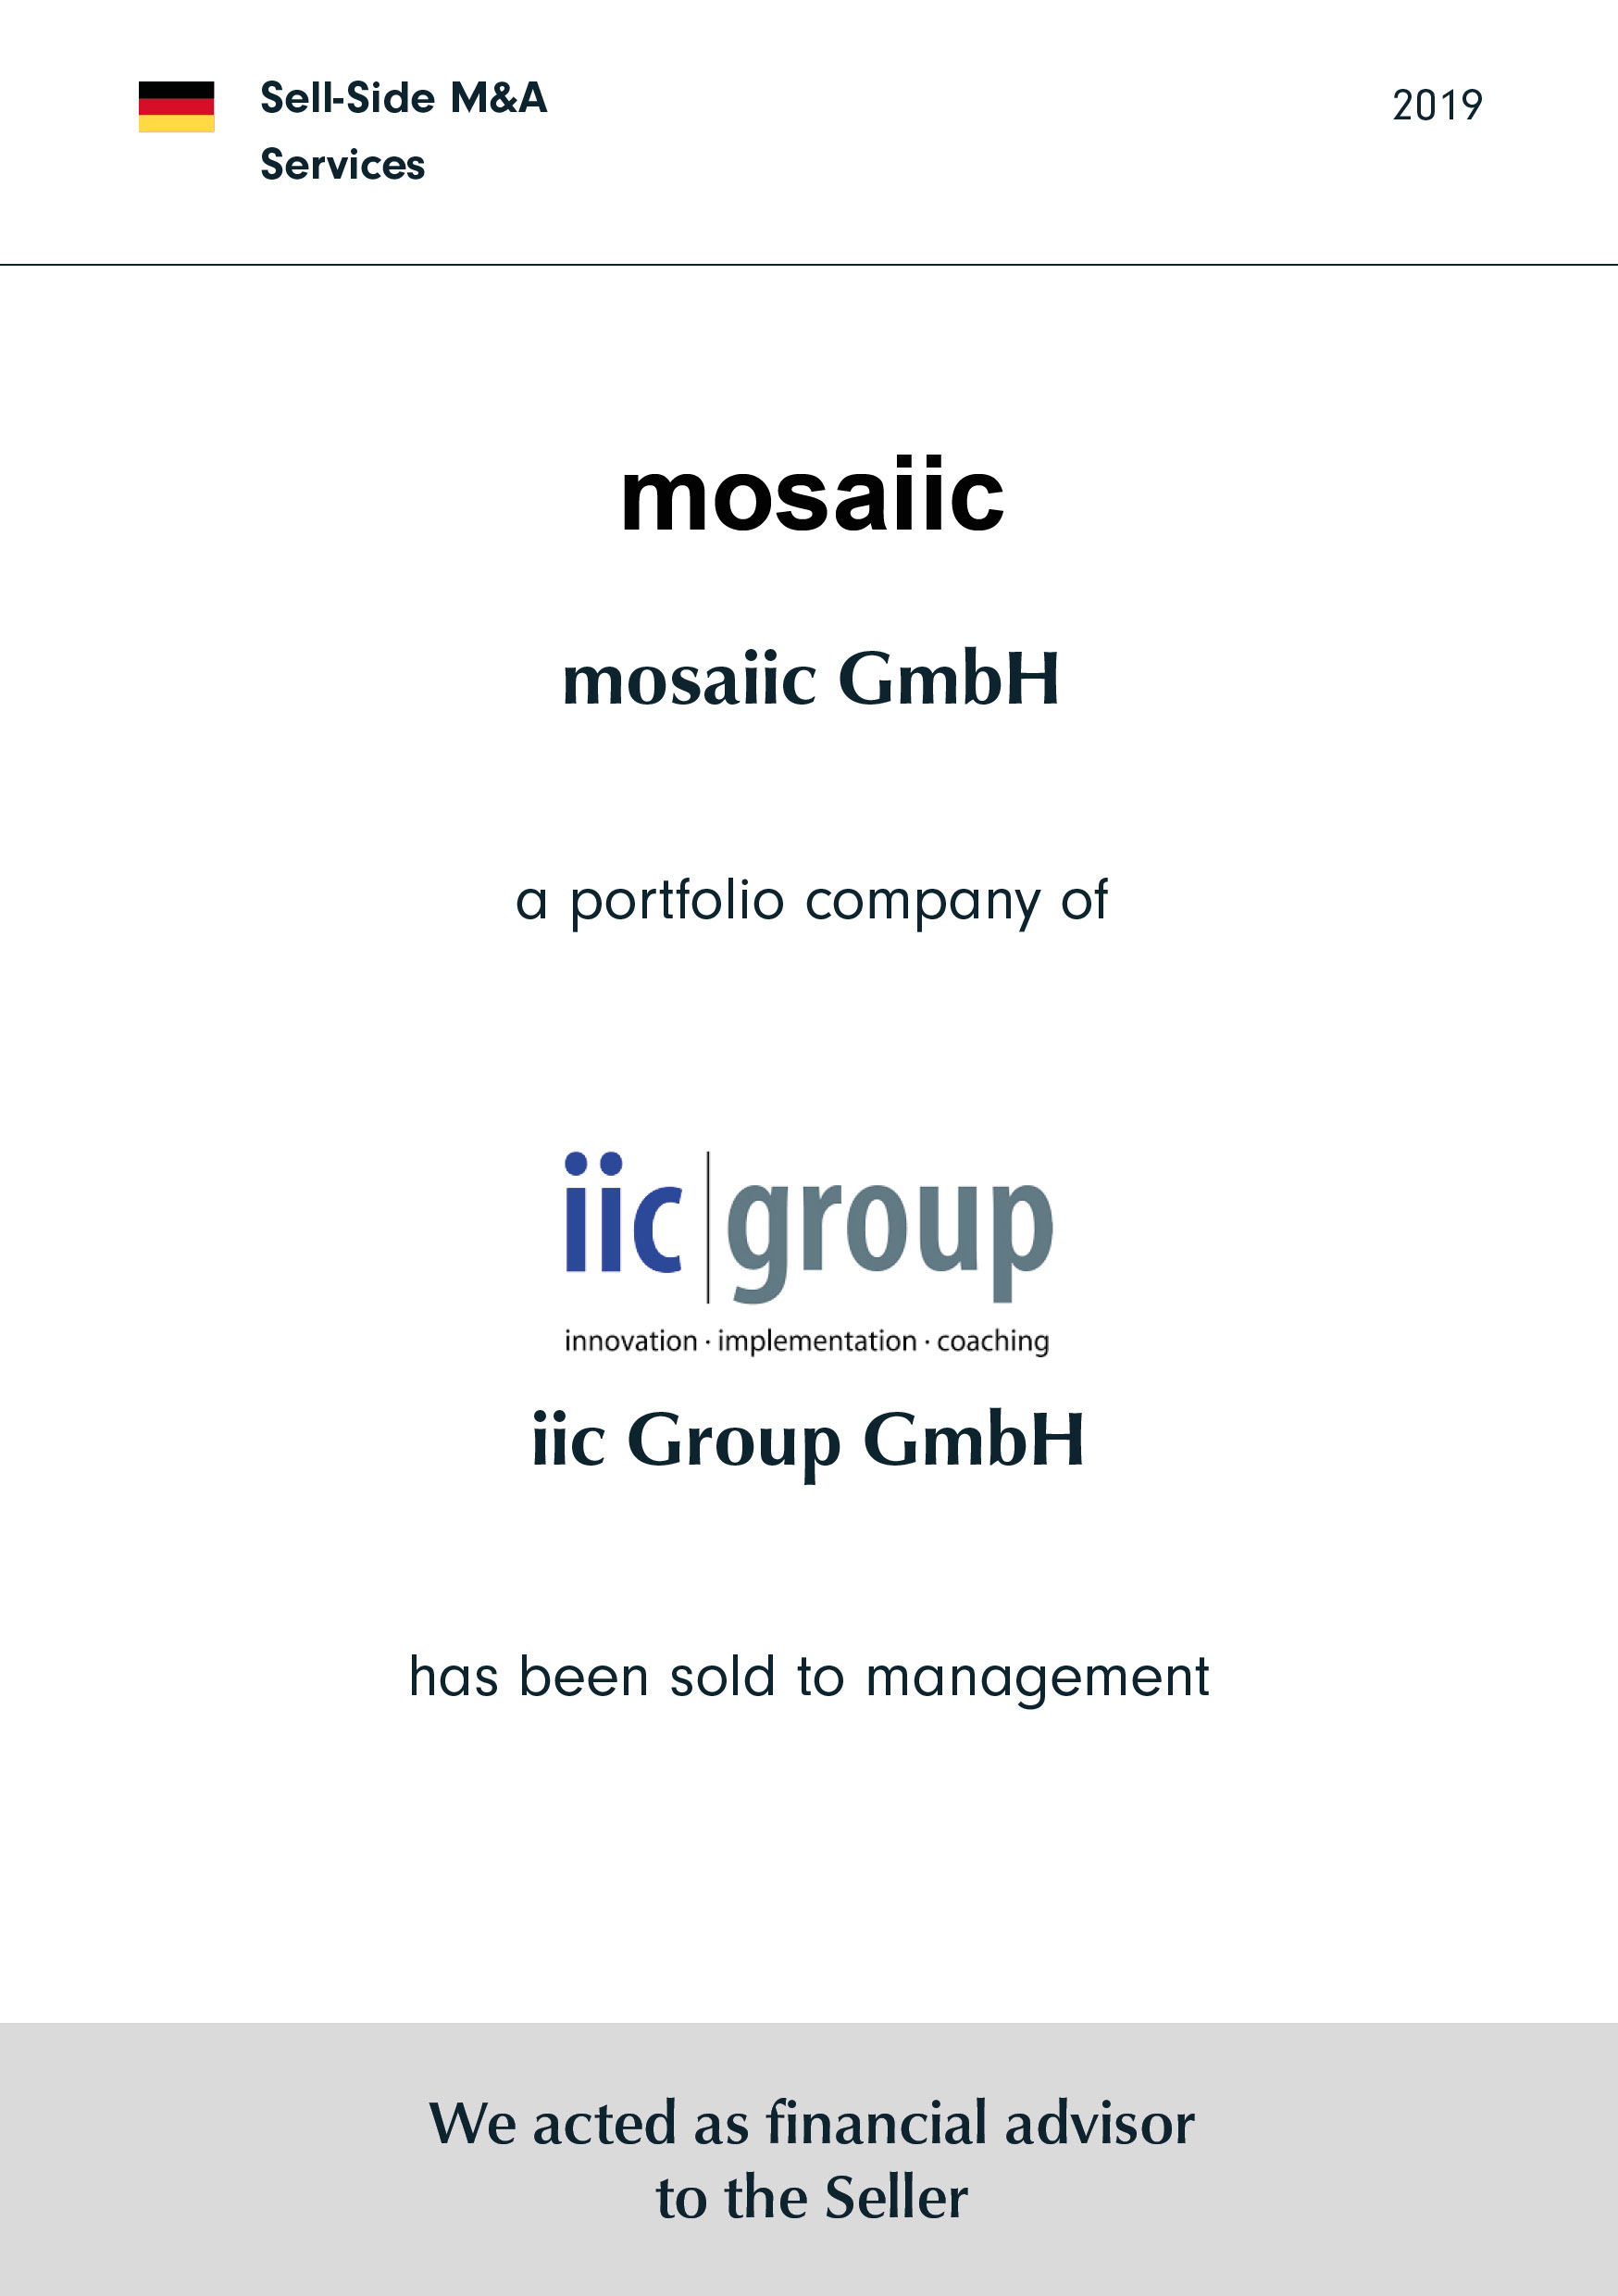 mosaiic GmbH | a portfolio company of | iic Group | has been sold to management